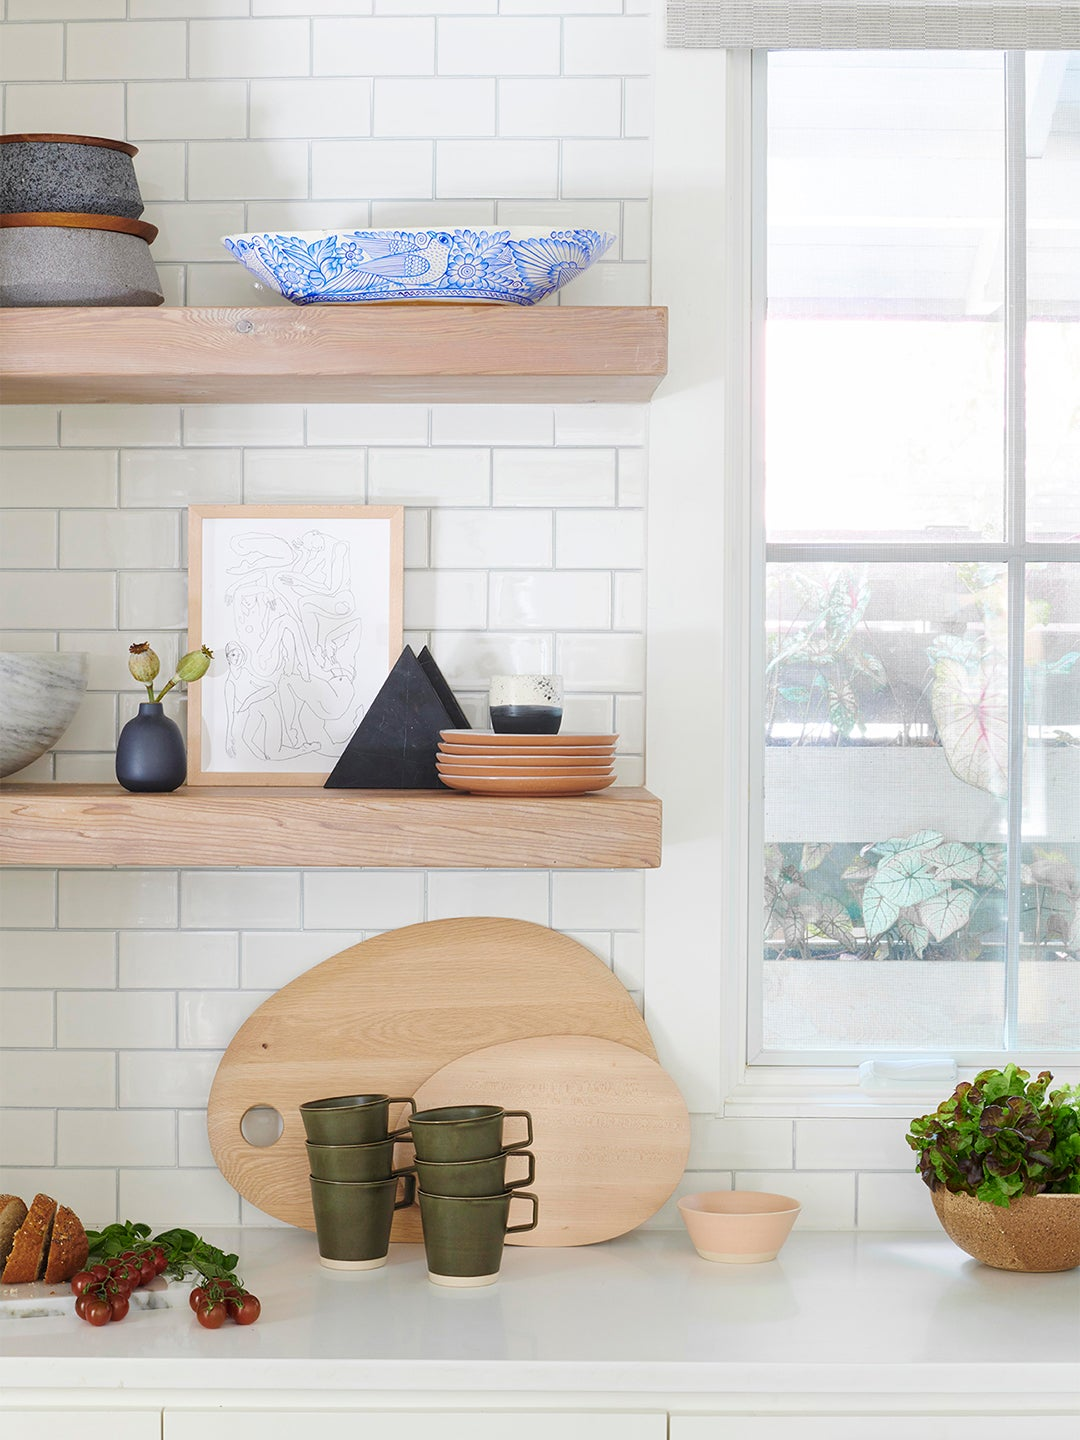 This Kitchen Color Might Be Trending, But It Could Hurt Your Resale Value